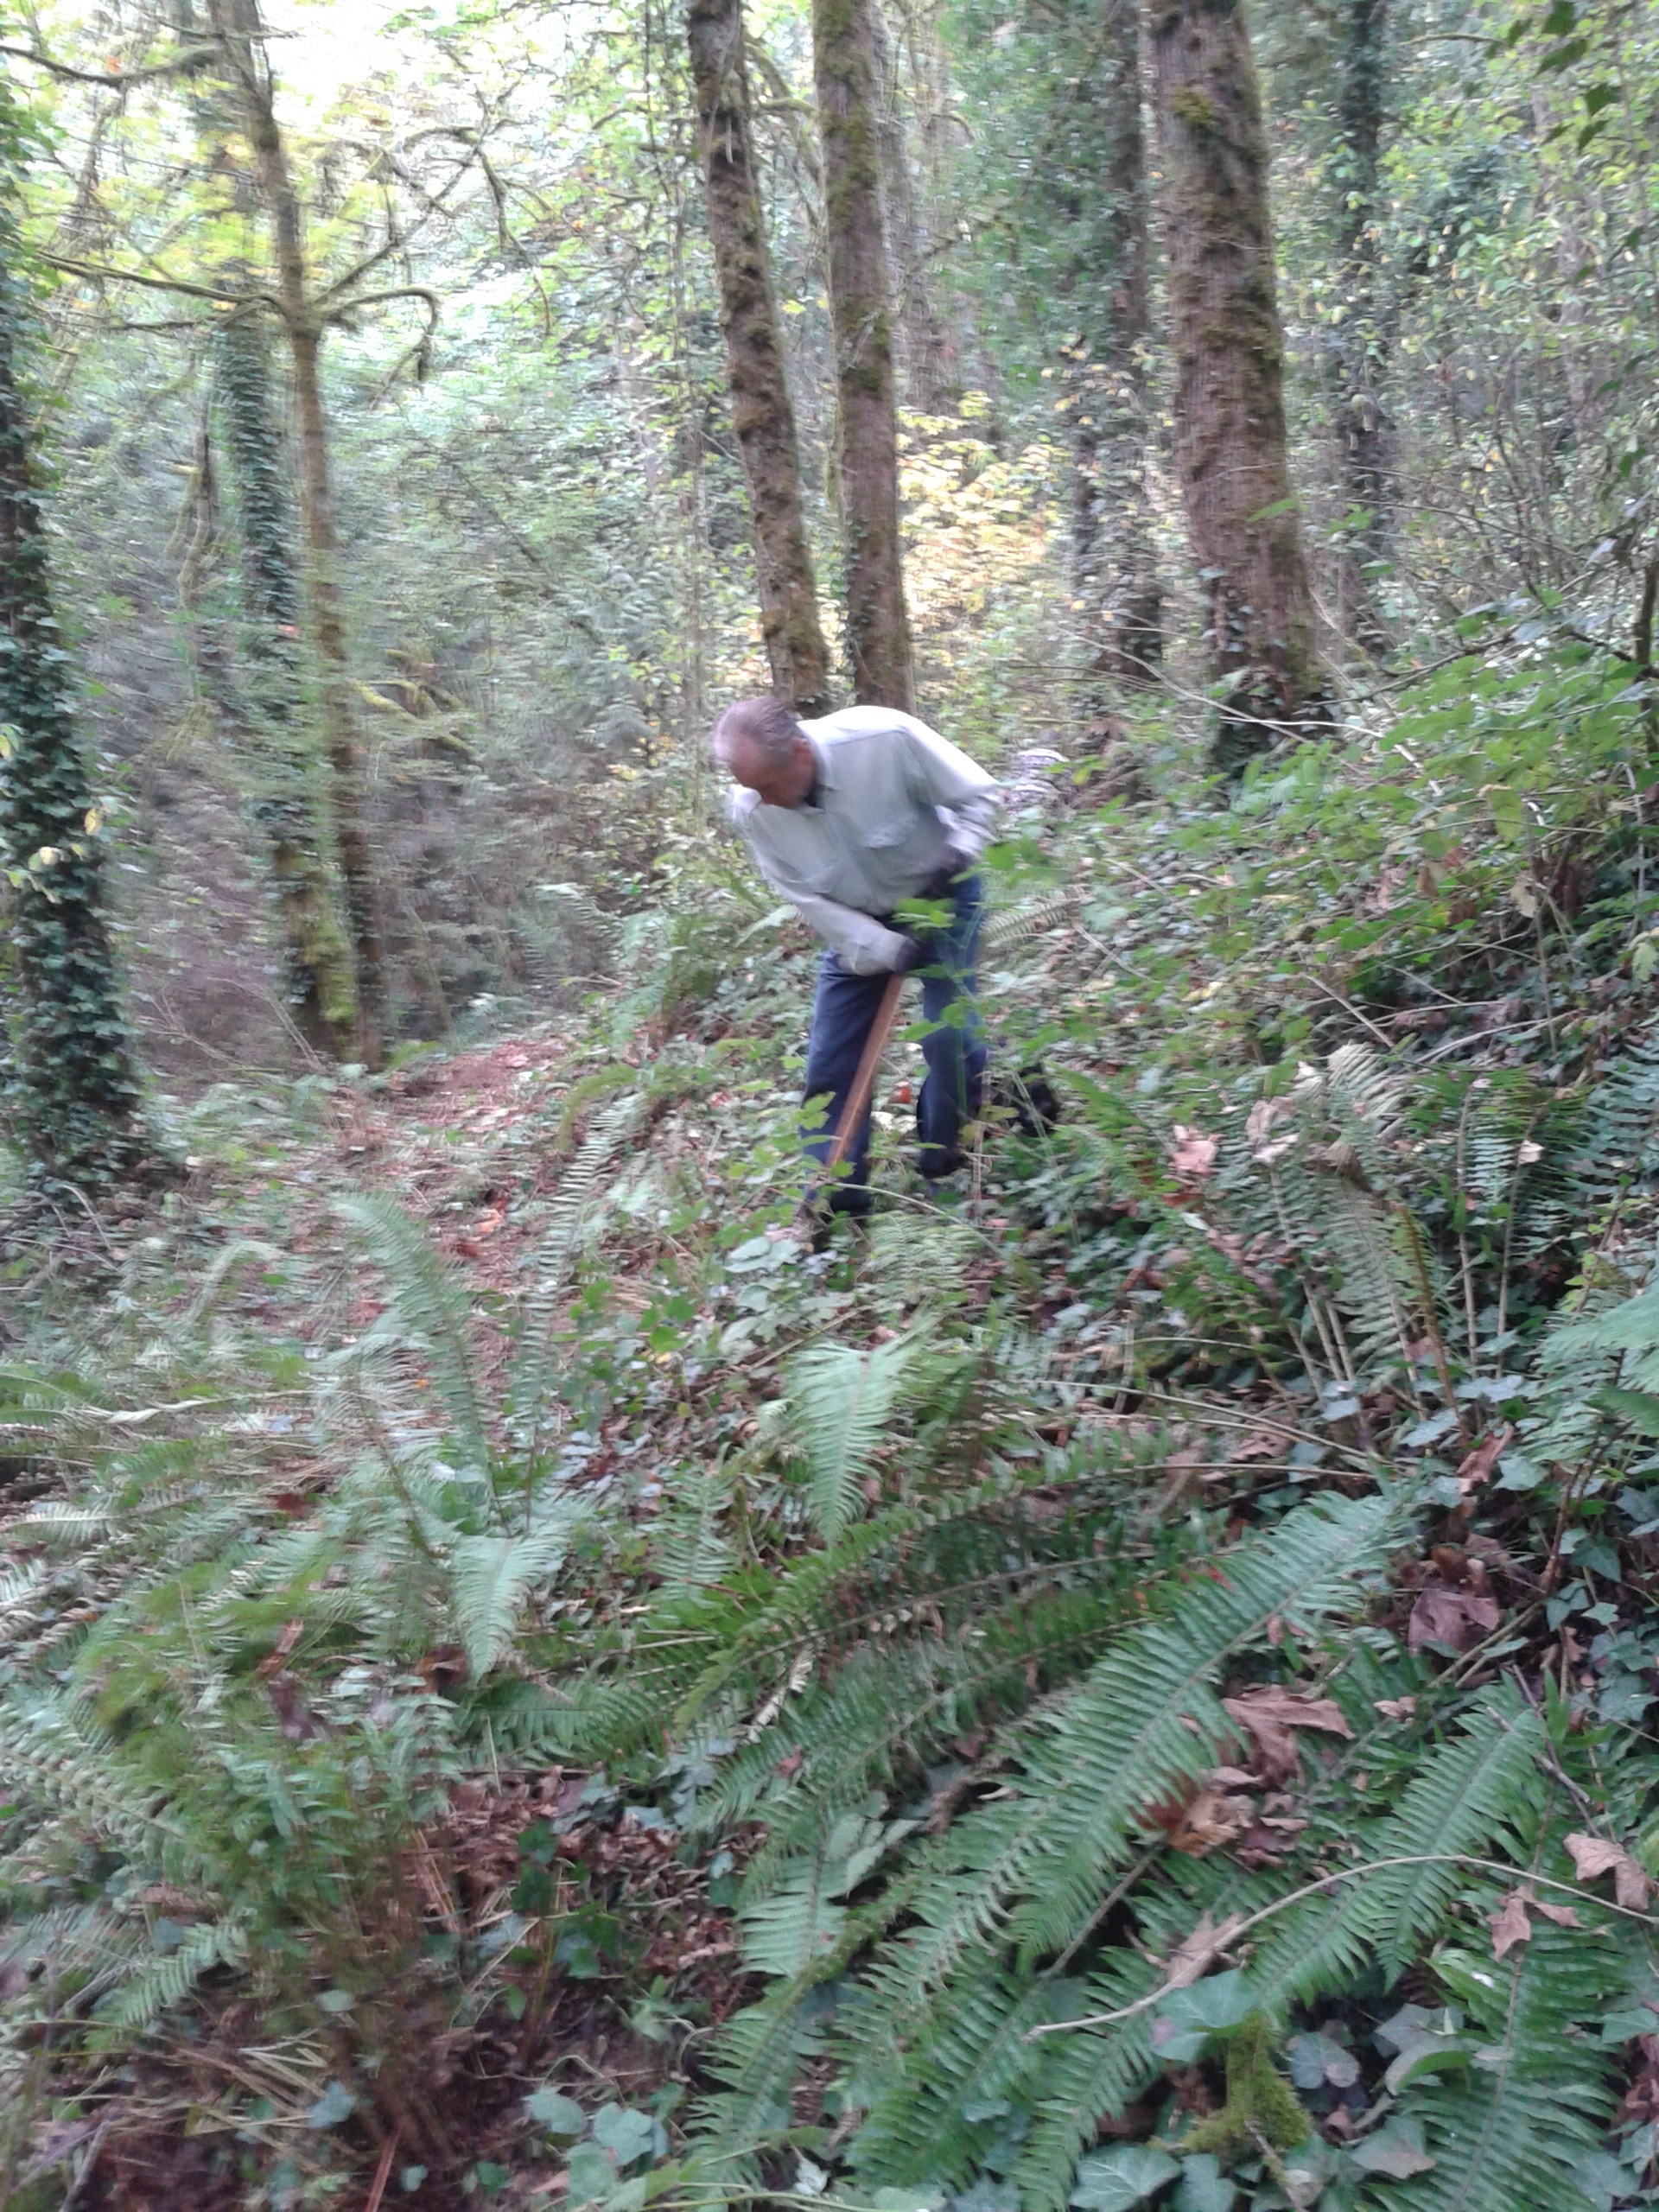 New alignment for trail that is not as steep as previous trail.  SW Trails volunteer is transplanting sword ferns that are in trail alignment.